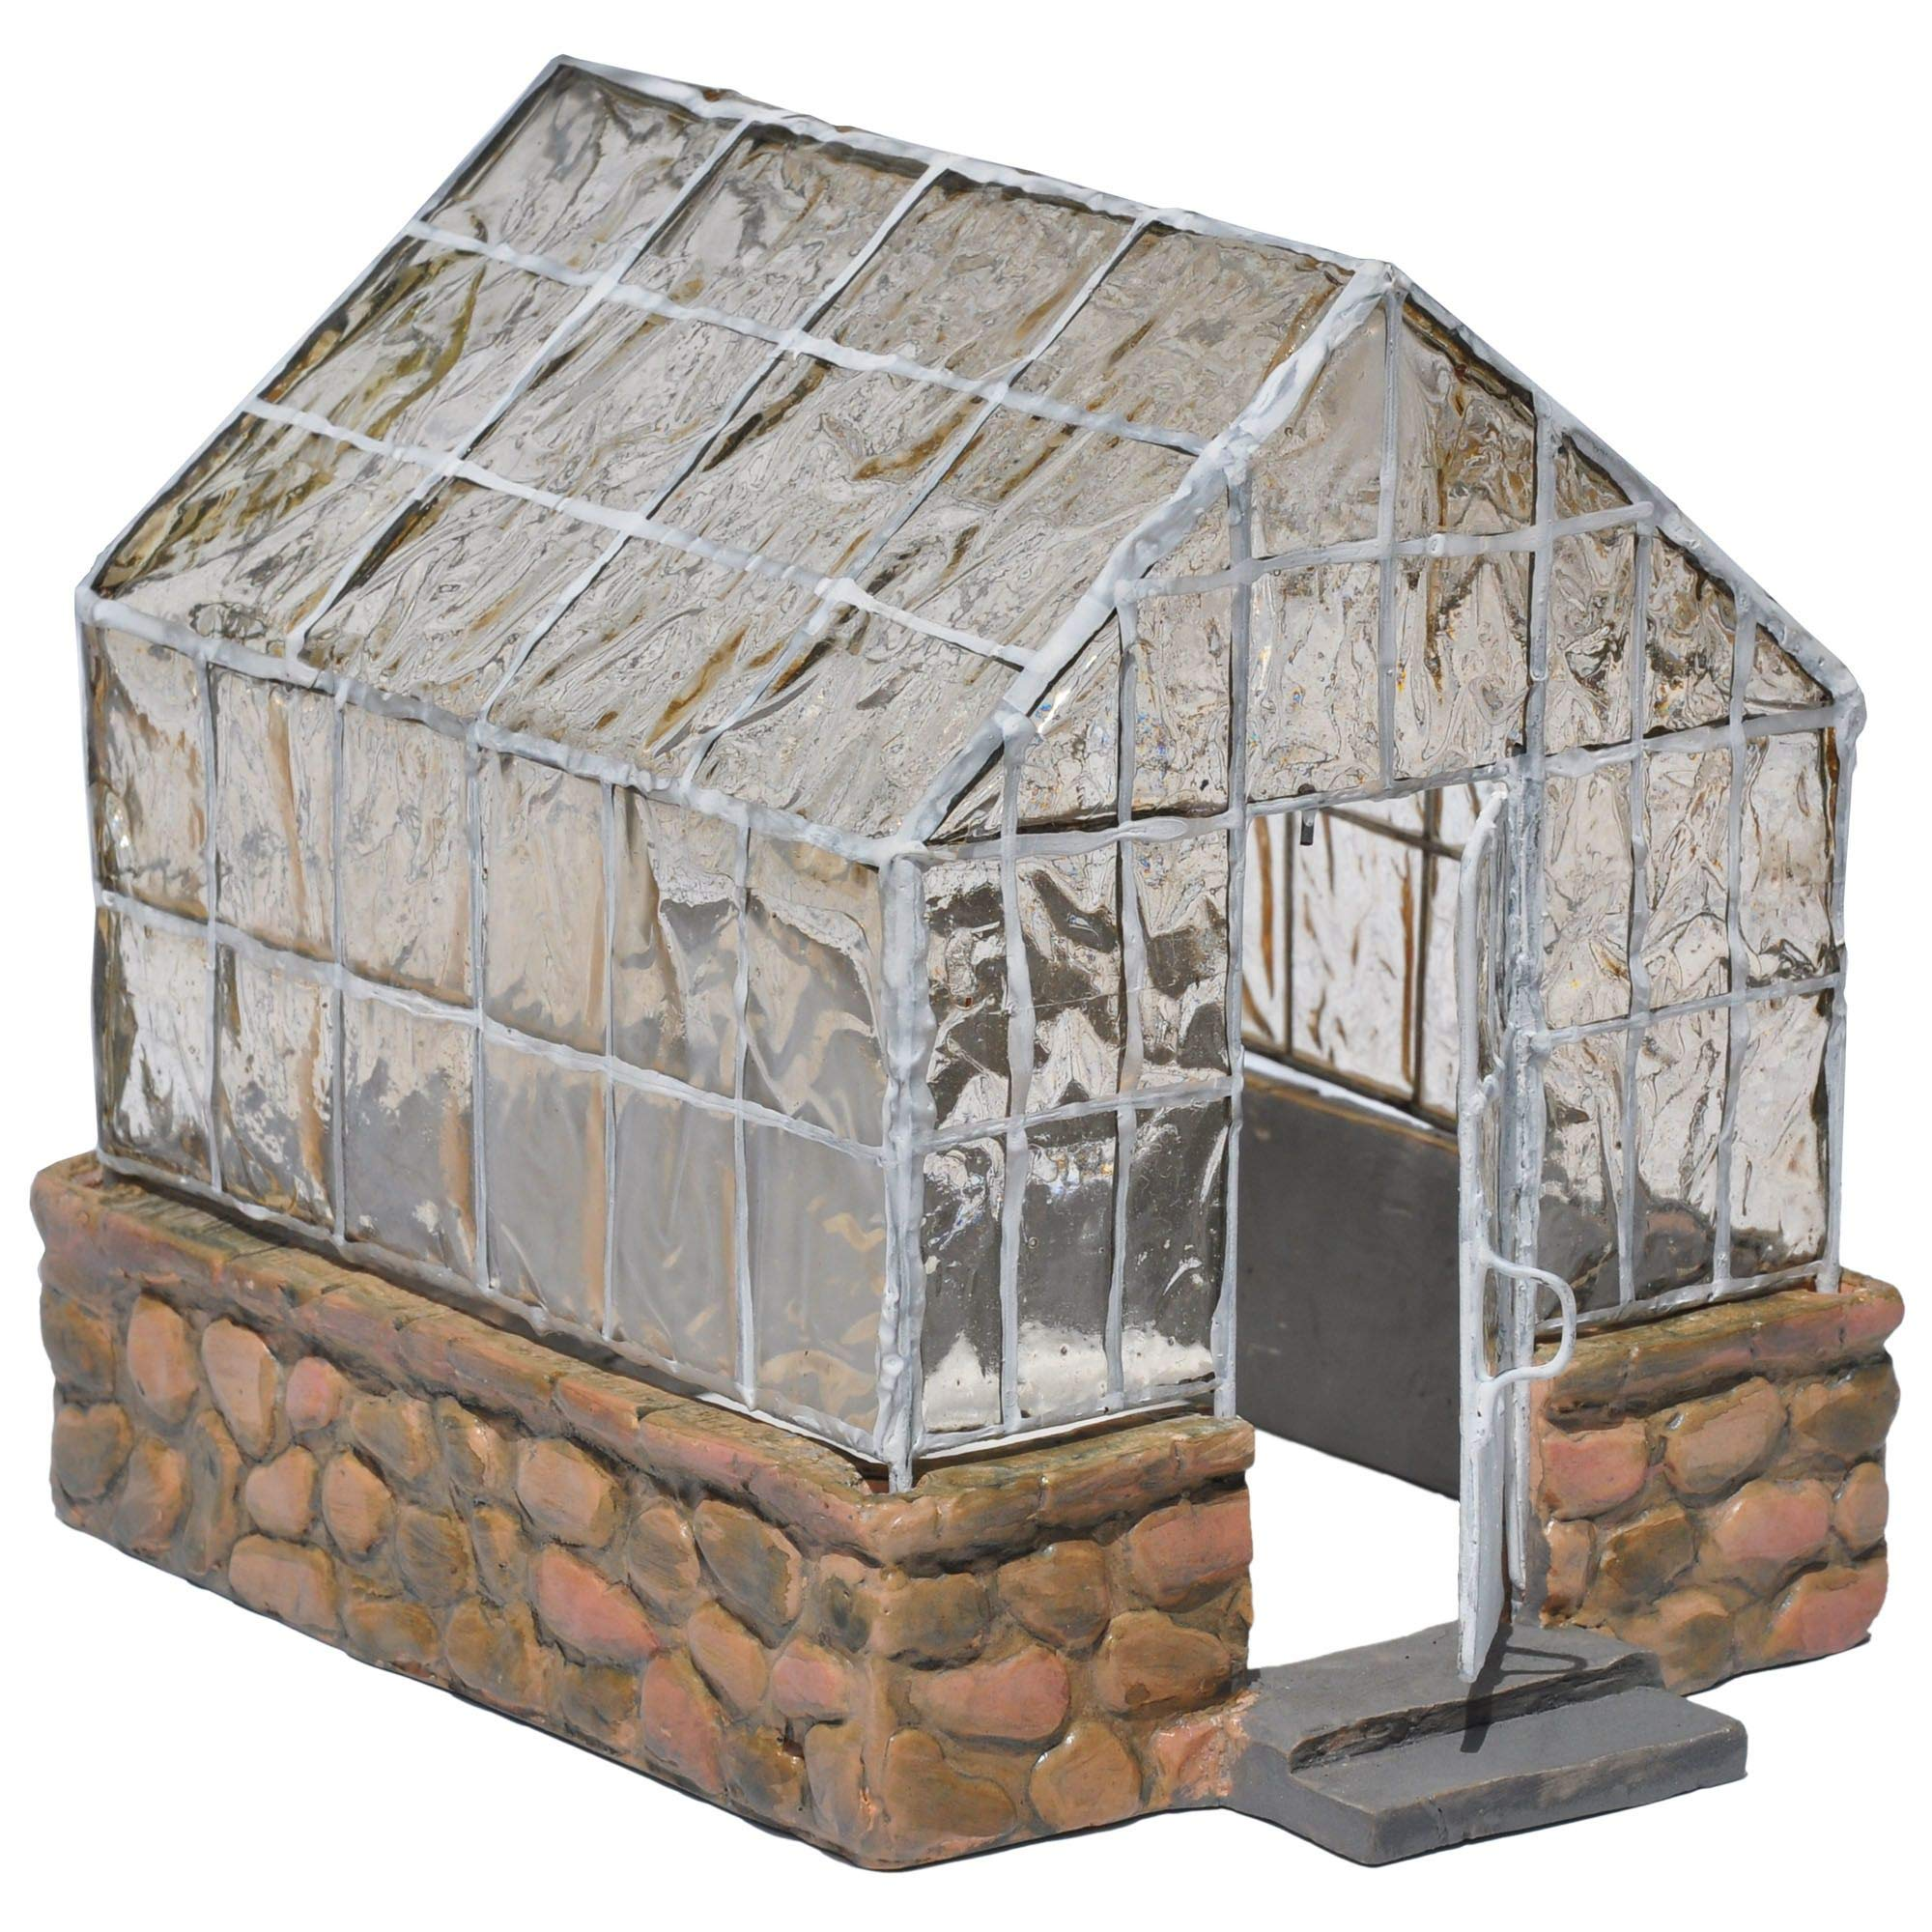 Jeremie Corporation Greenhouse for Miniature Garden, Fairy Garden